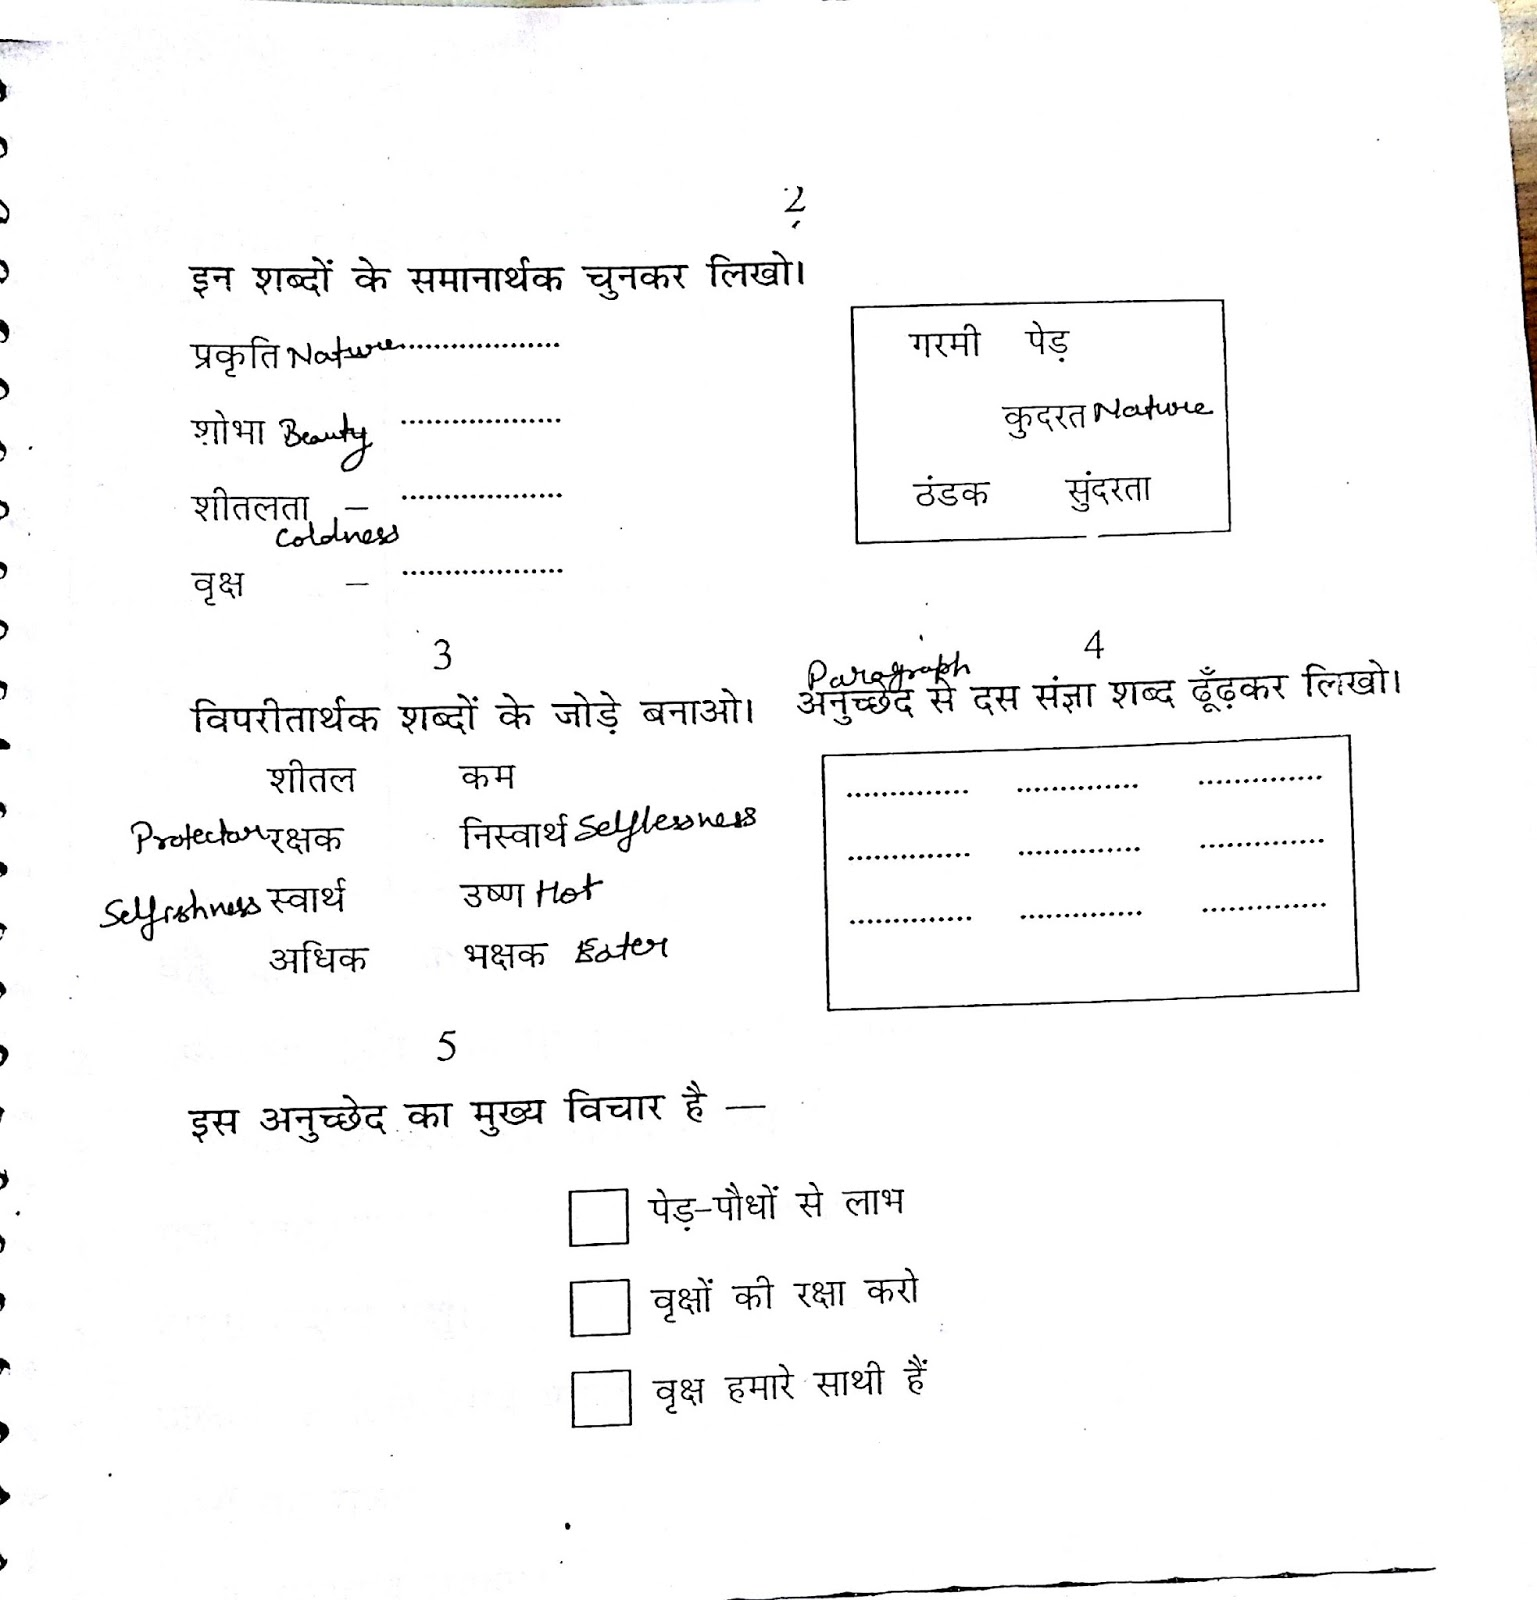 Hindi Grammar Work Sheet Collection For Classes 5,6, 7 & 8 Comprehensions Work Sheets For